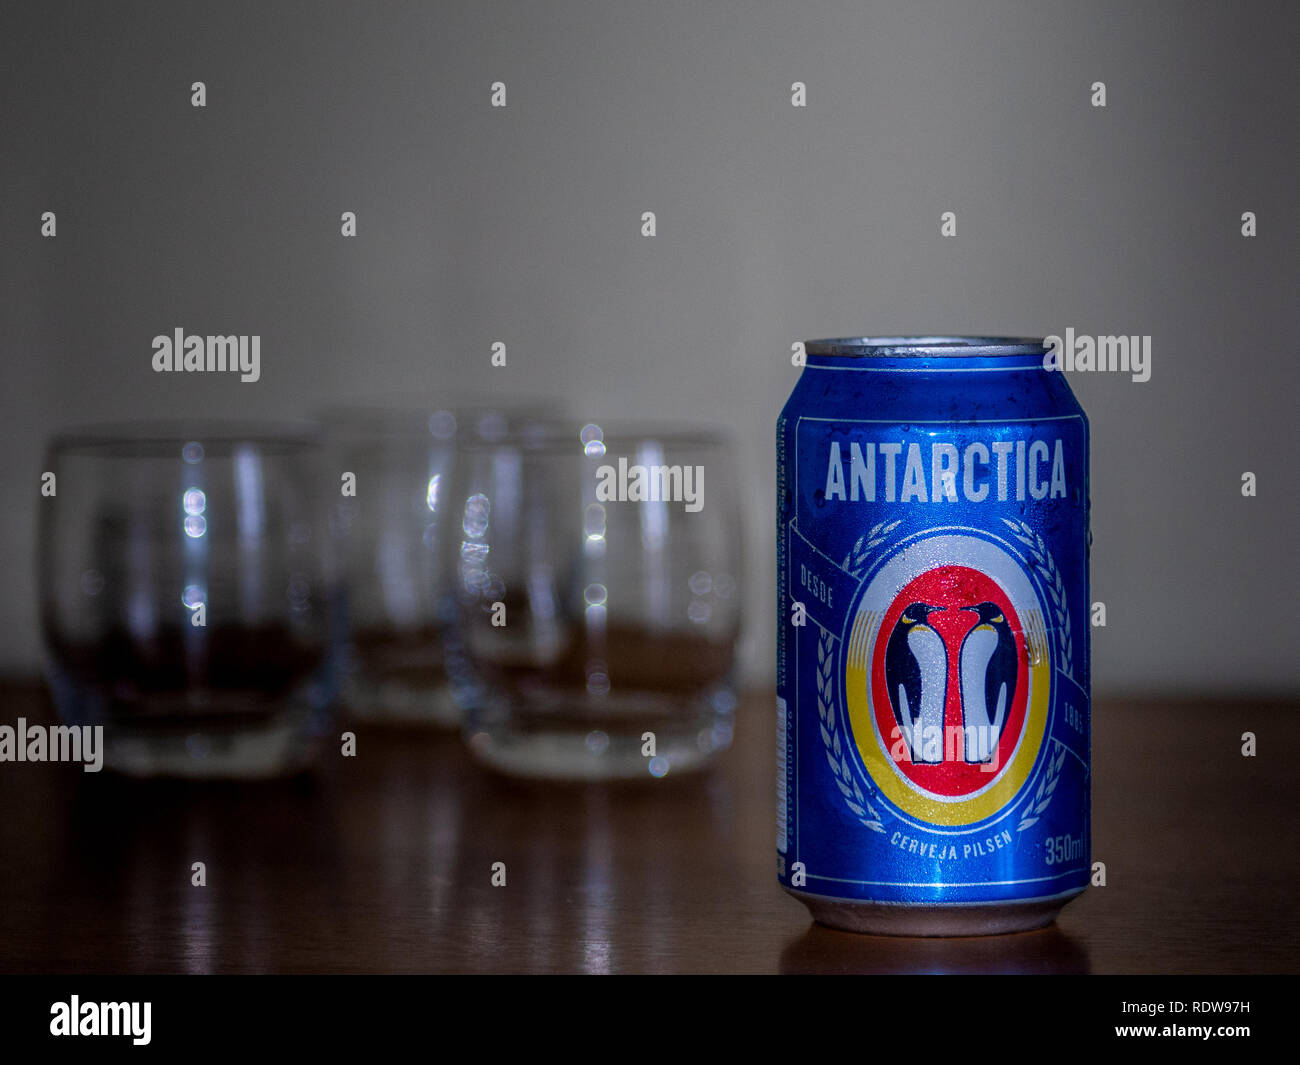 Petropolis, Rio de Janeiro, Brazil- December 26, 2018: A bottle of Antartica beer with three glass cups - Stock Image